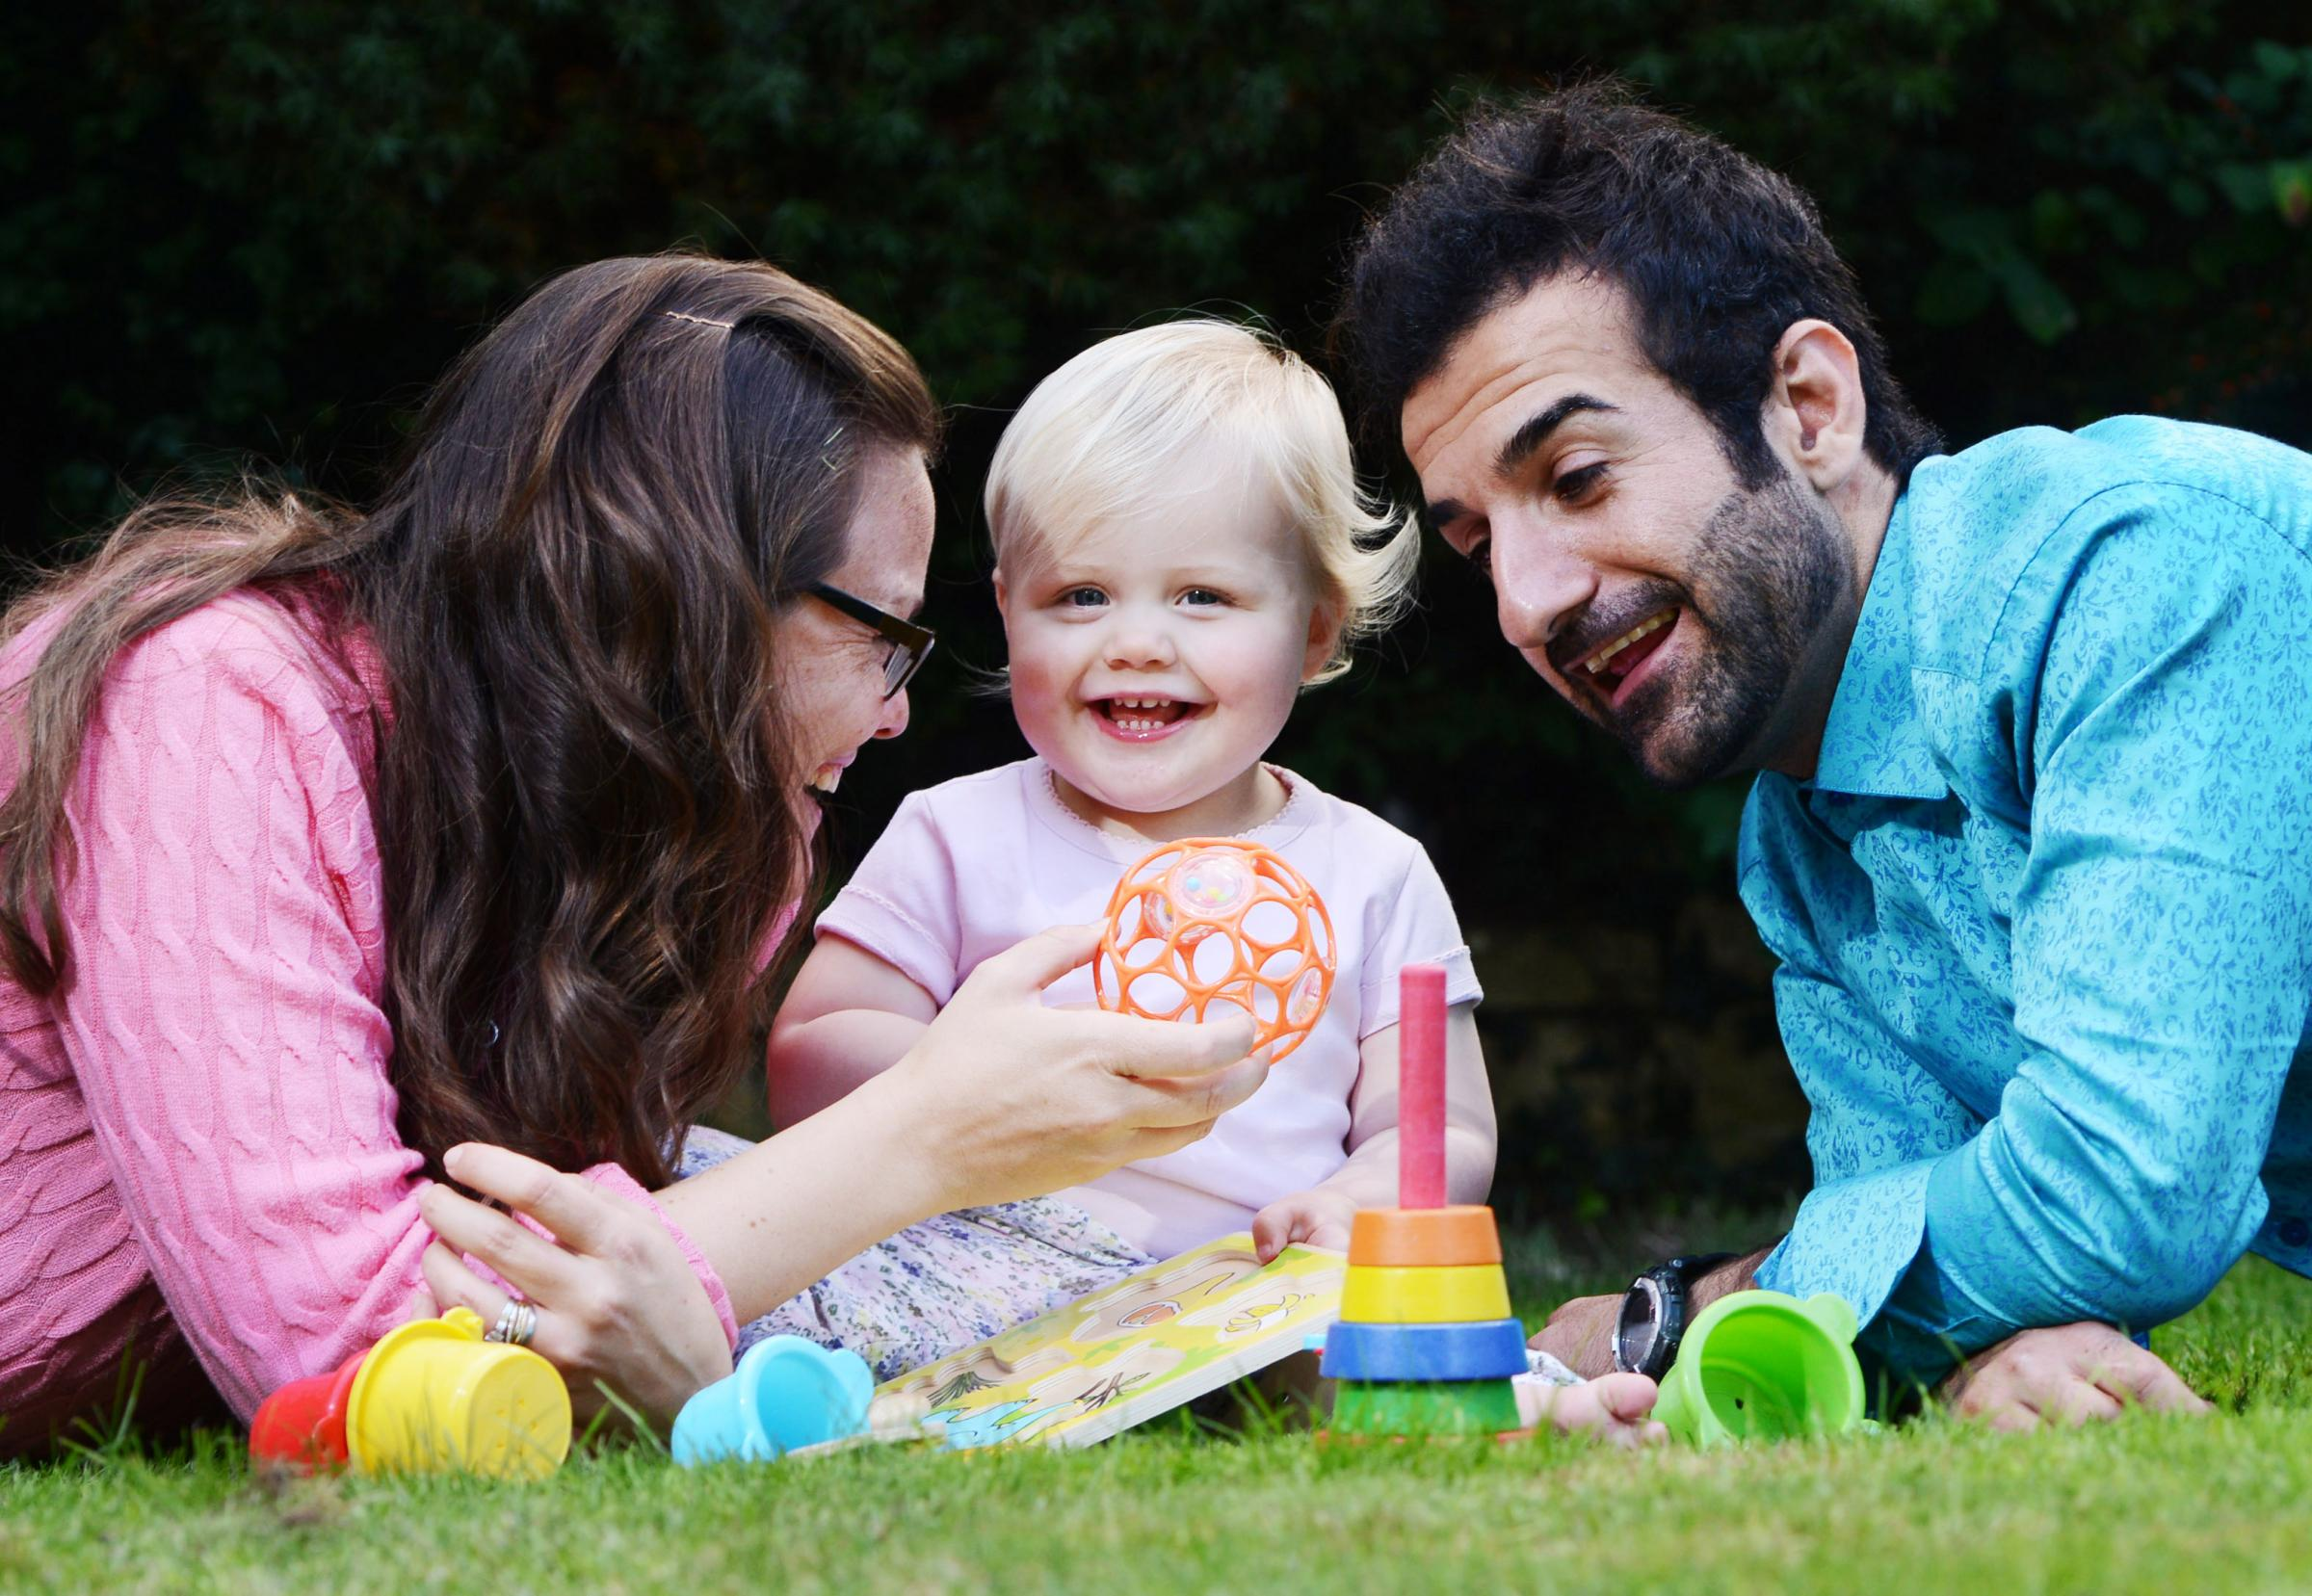 Happy families: Nicola Smith and her daughter Jodi with Peyman Ismaeli at home in Barton